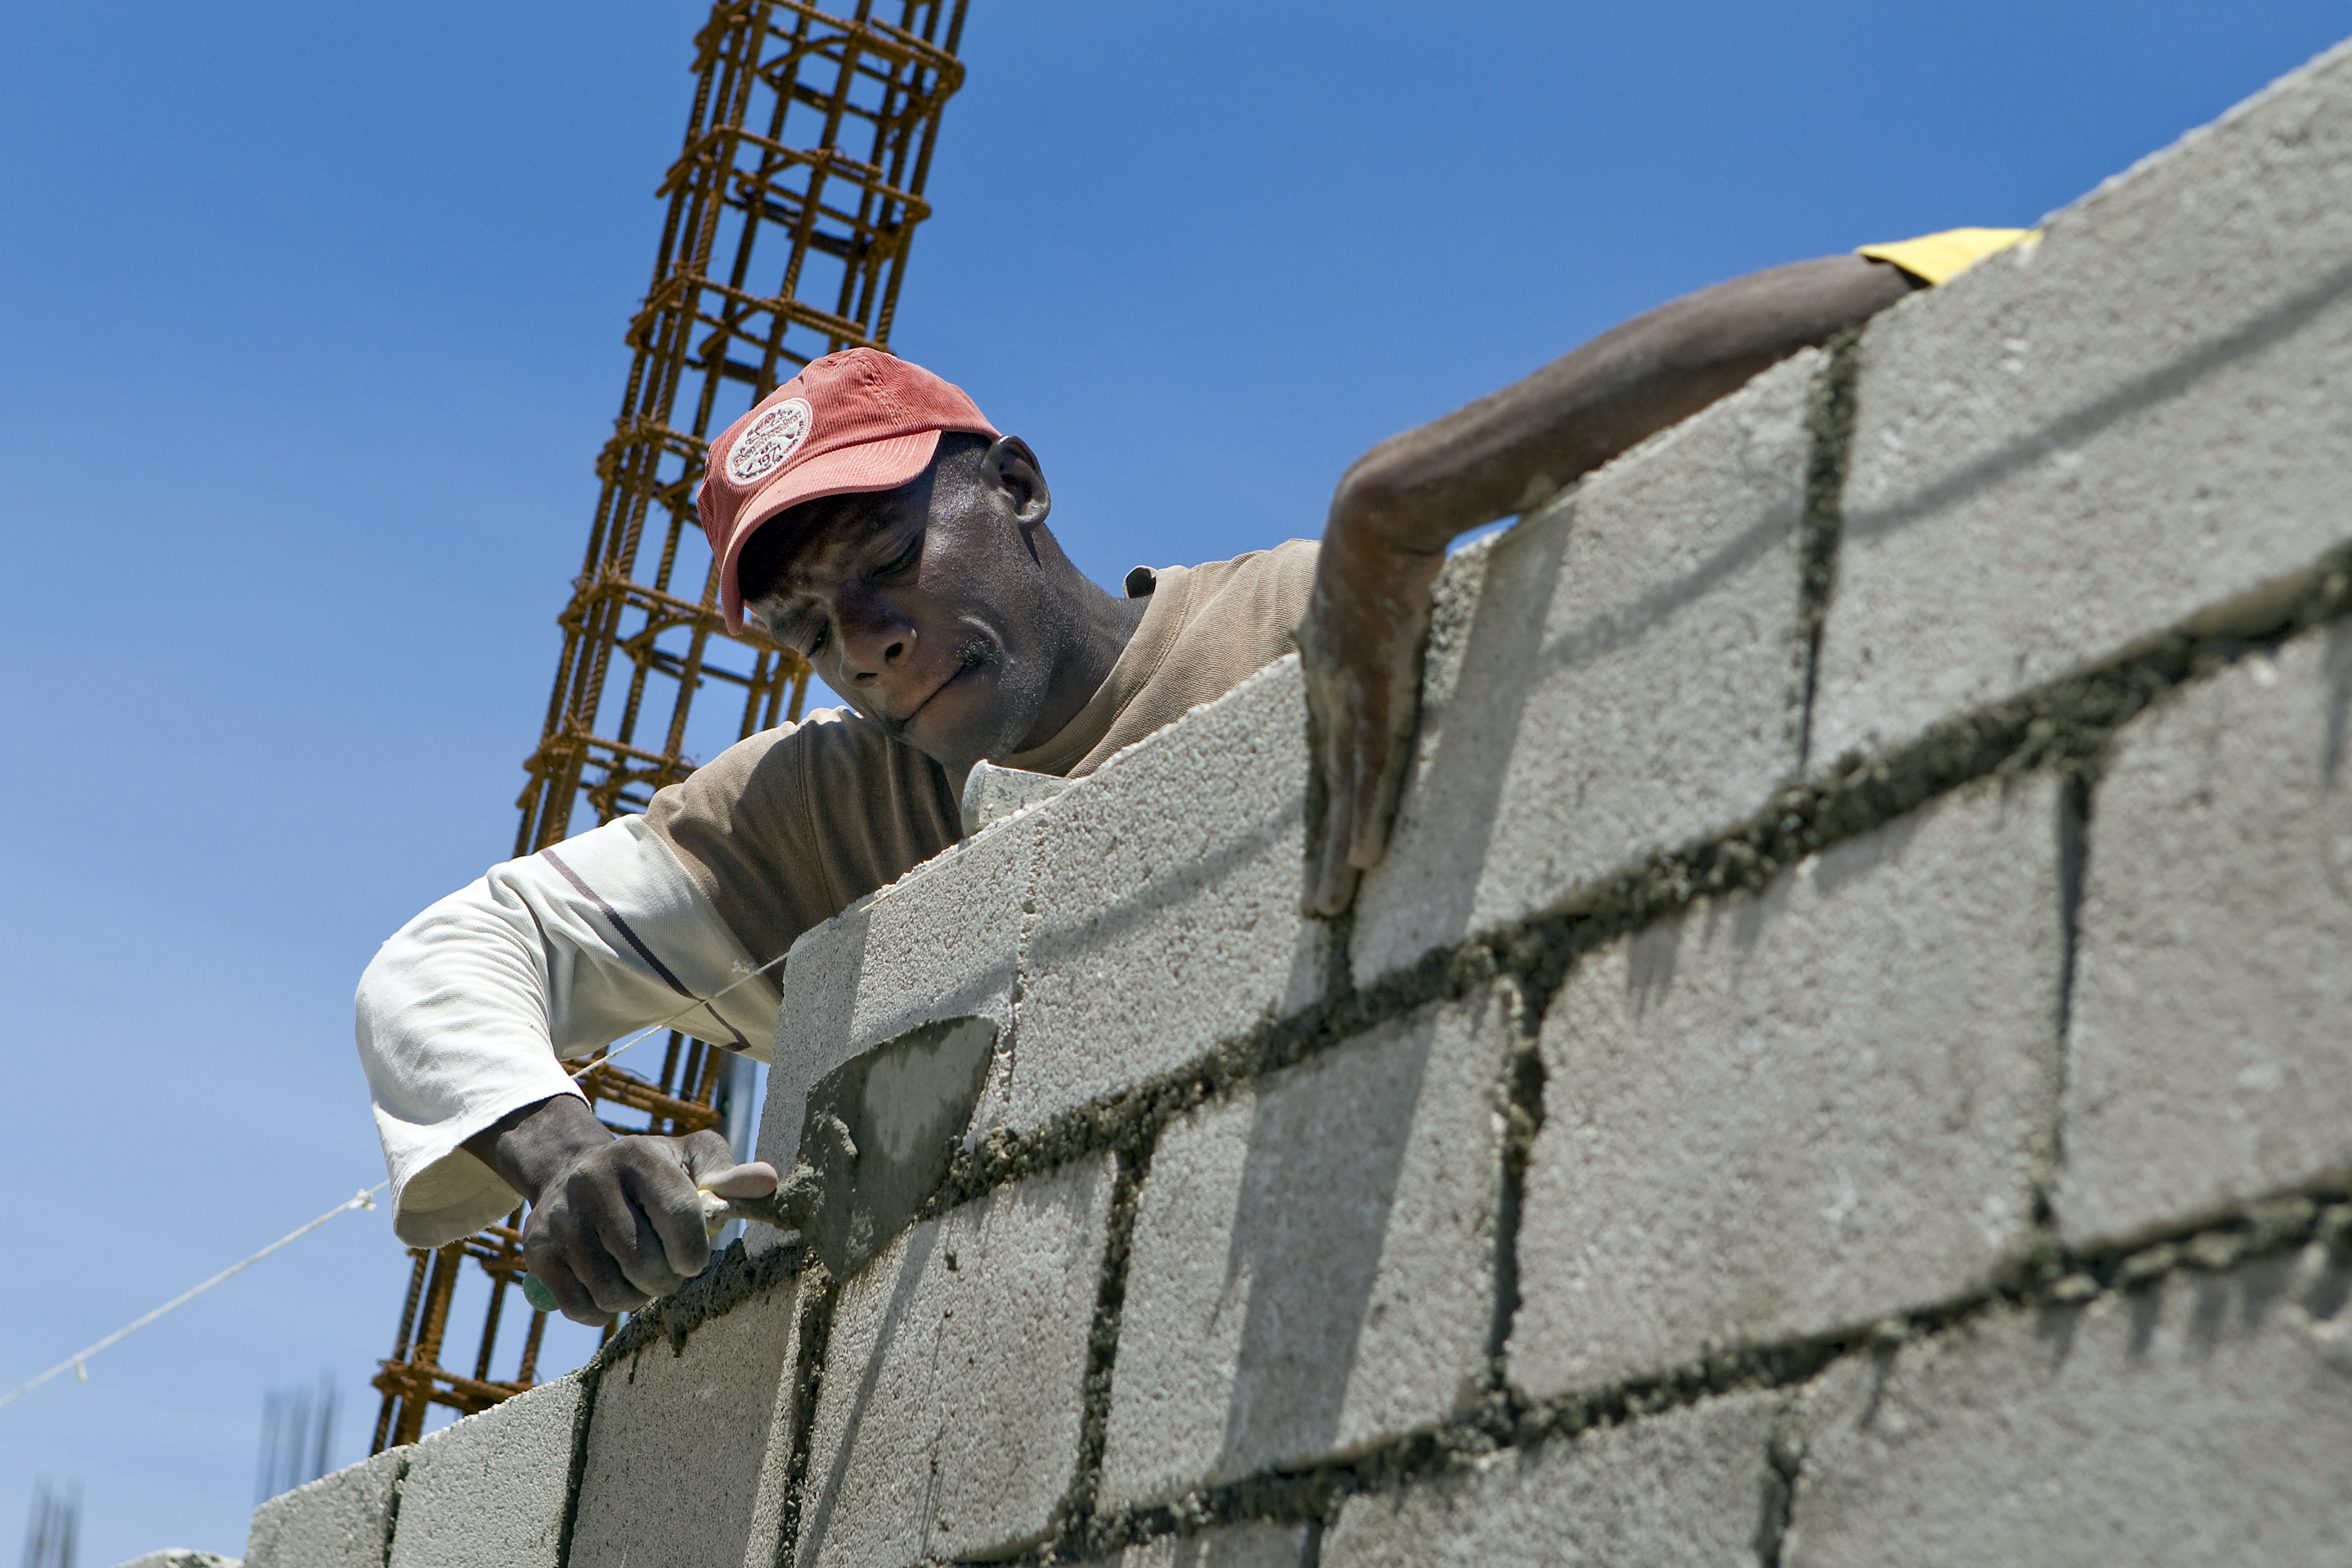 Adequate prisons are key to the rule of law. This worker in Haiti is helping build a new prison to alleviate massive overcrowding in Haiti's only penitentiary in downtown Port-au-Prince.